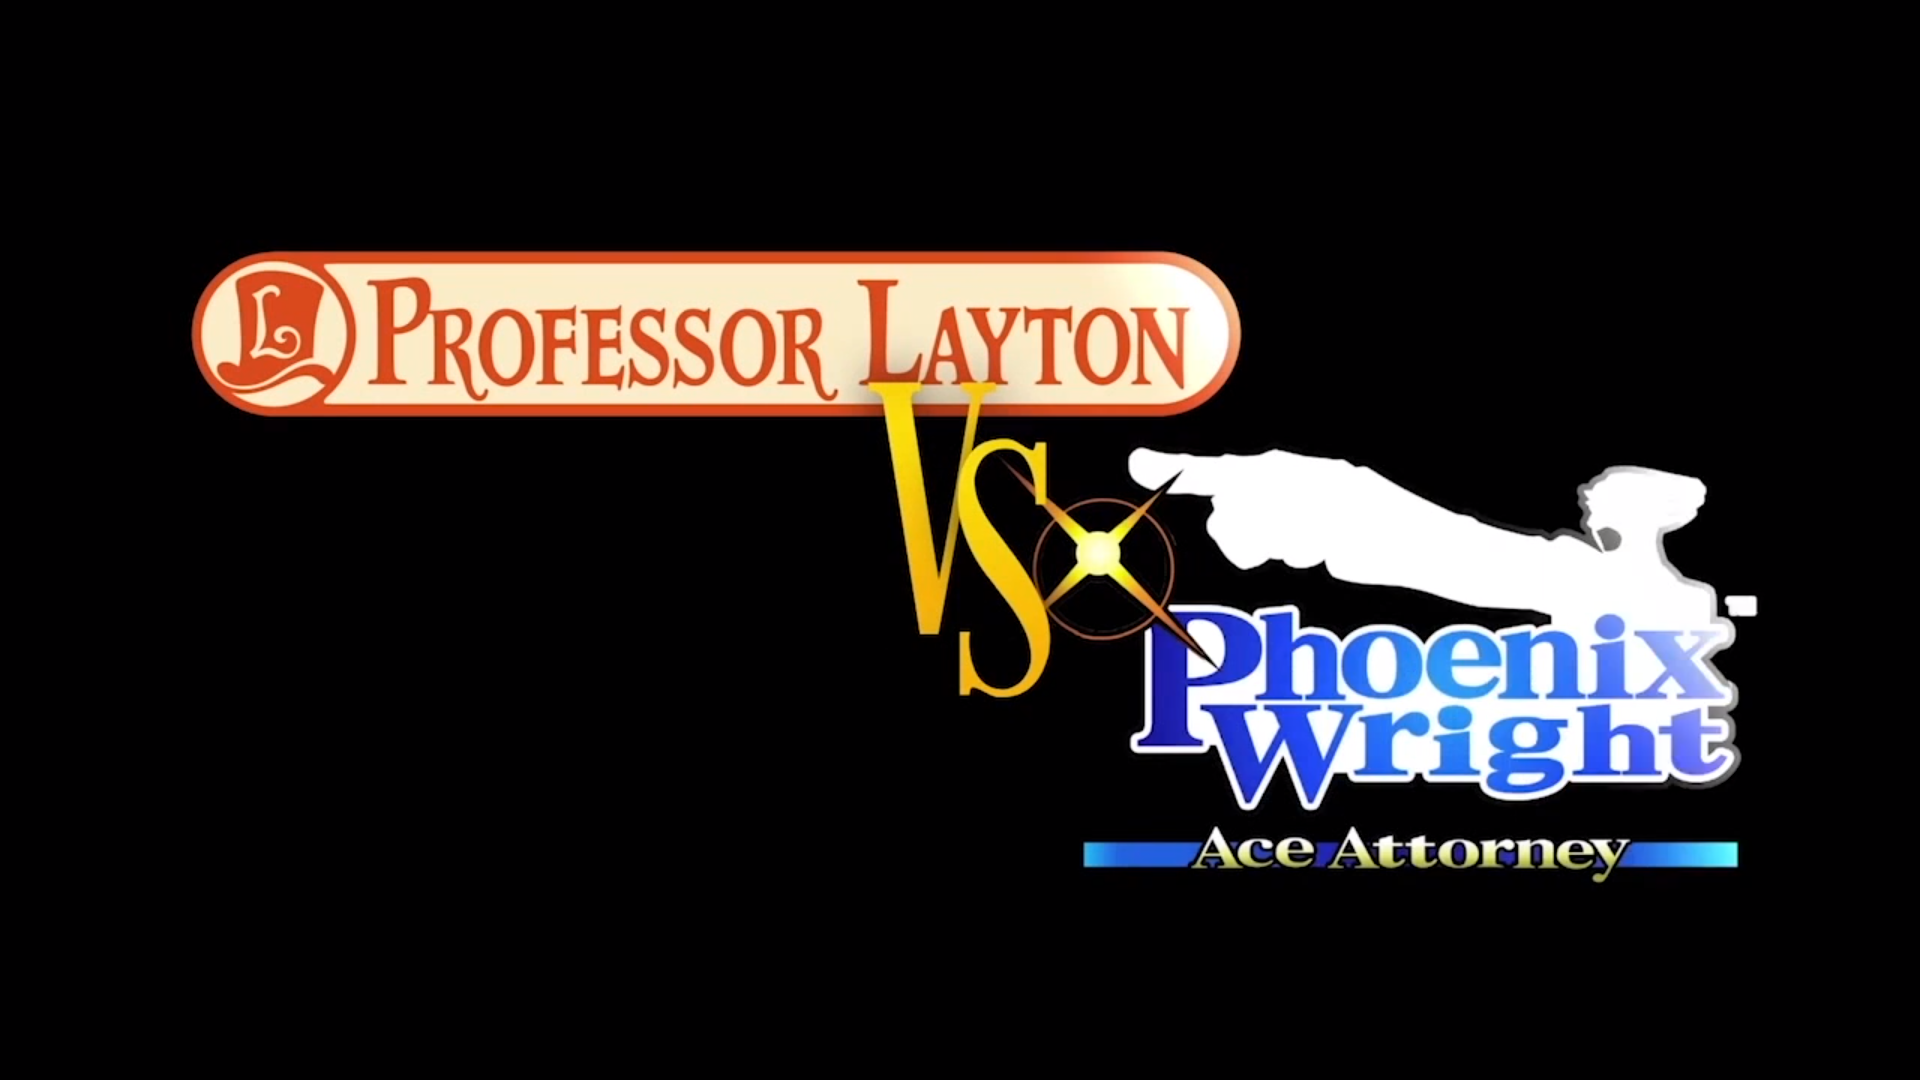 New Professor Layton & Phoenix Wright: Ace Attorney Games Coming In 2014